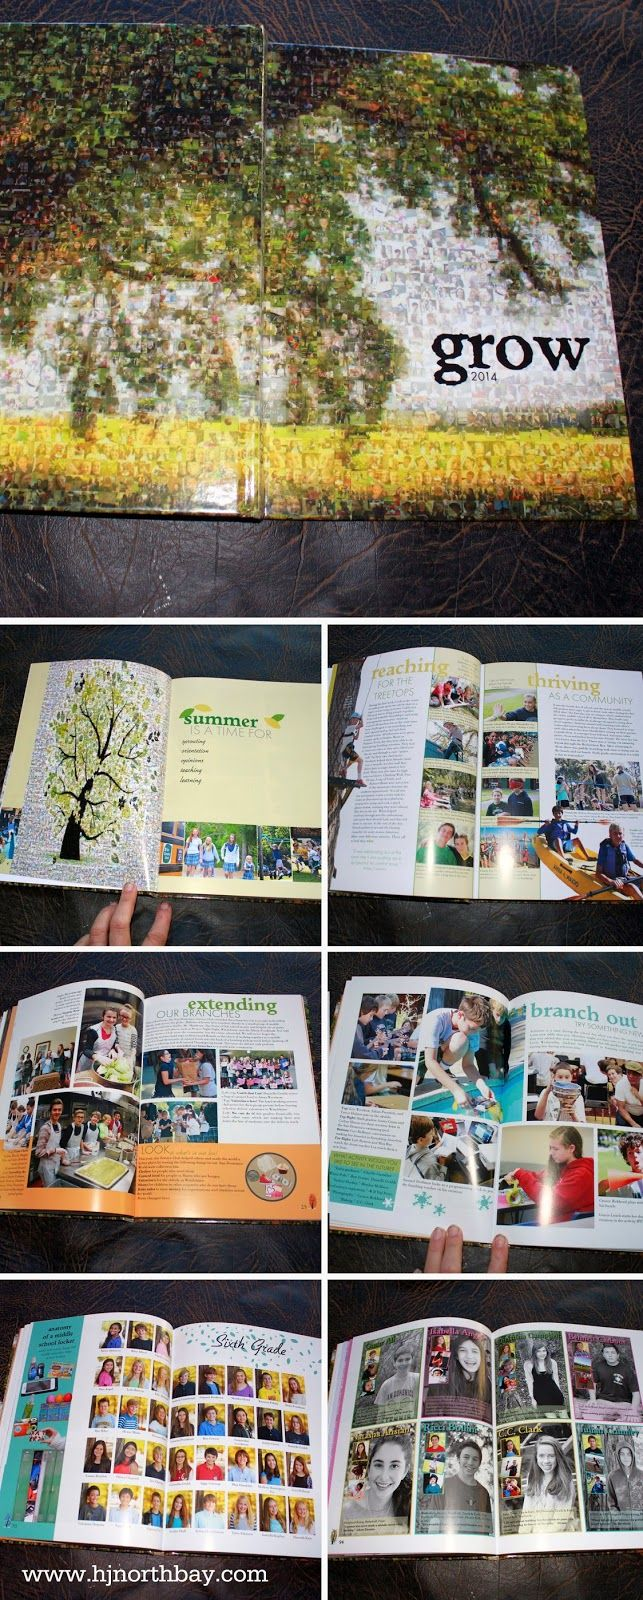 Grow yearbook theme with great coverage and a mosaic tree cover